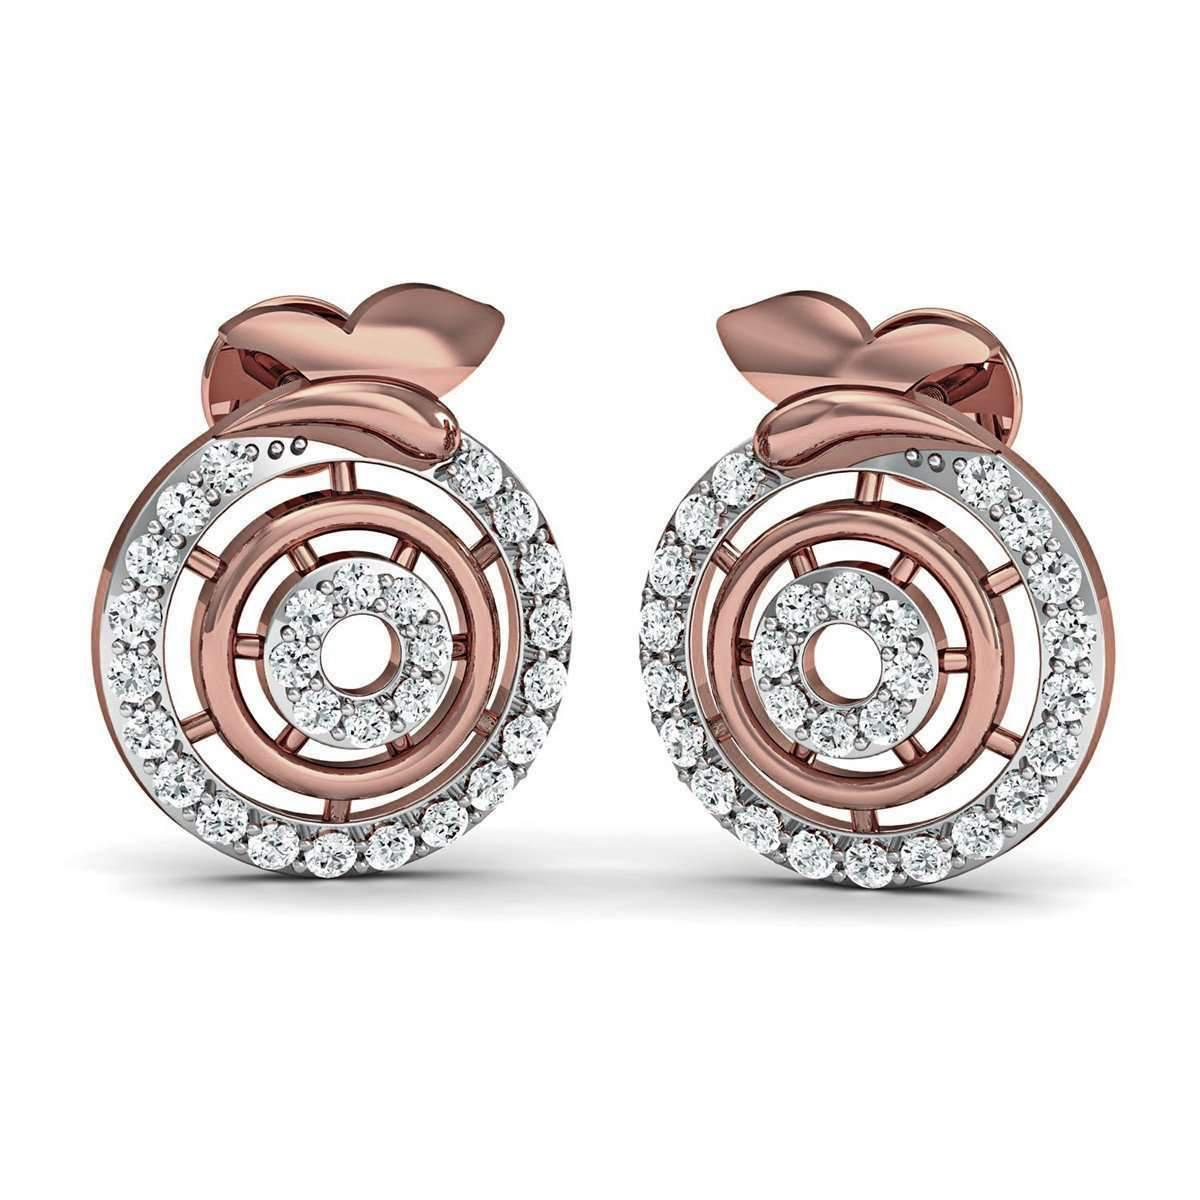 Diamoire Jewels Hand-carved 10kt Rose Gold Pave Earrings with Hand-set Premium Quality Diamonds j4vyg8Xt